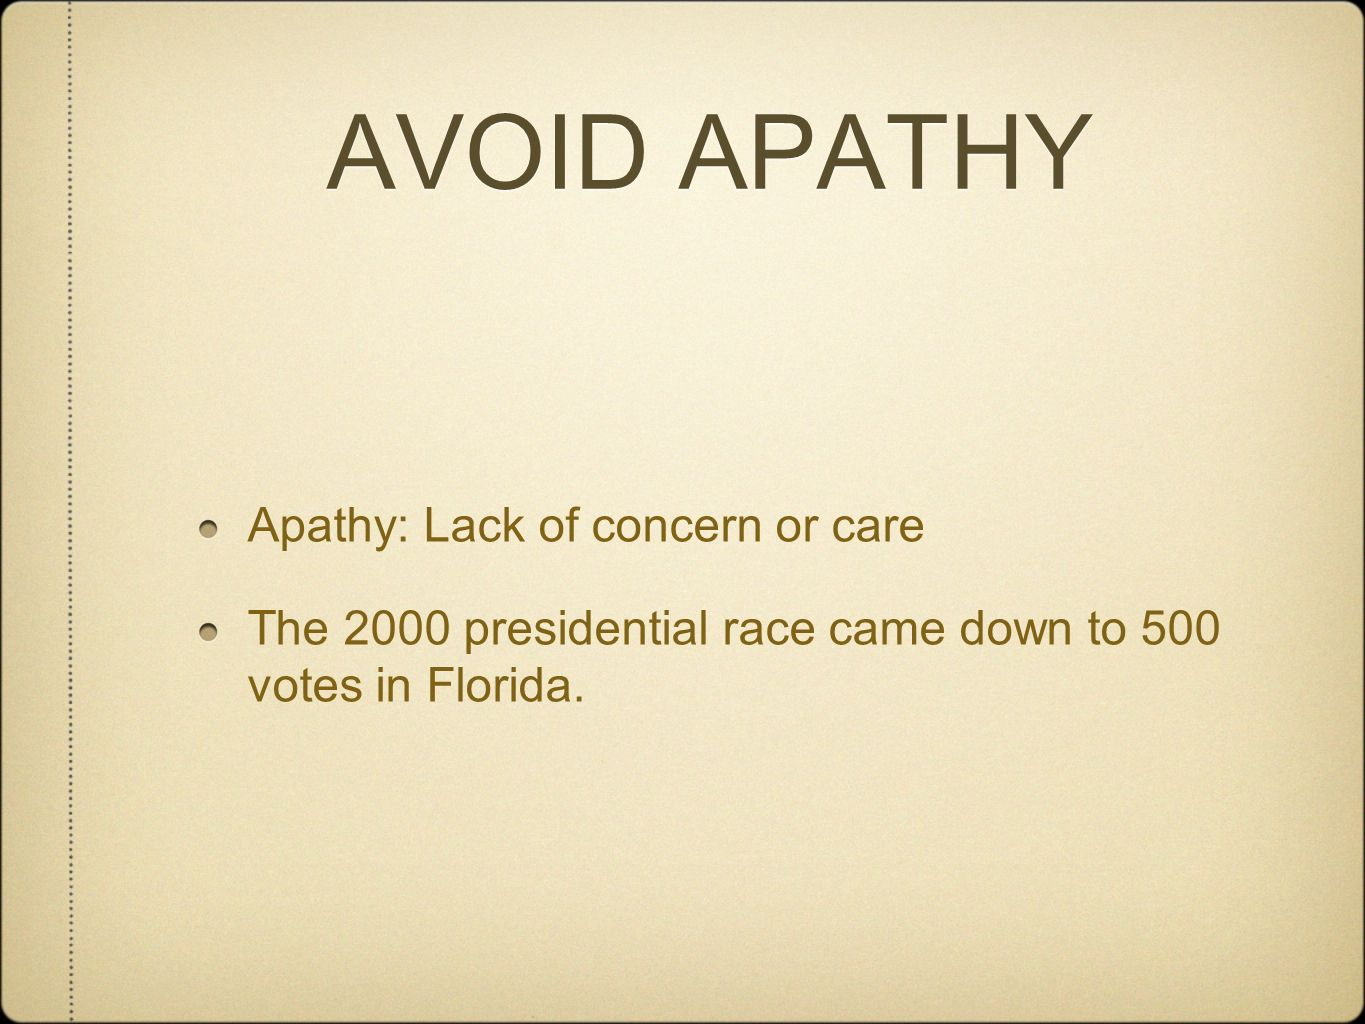 AVOID APATHY Apathy: Lack of concern or care